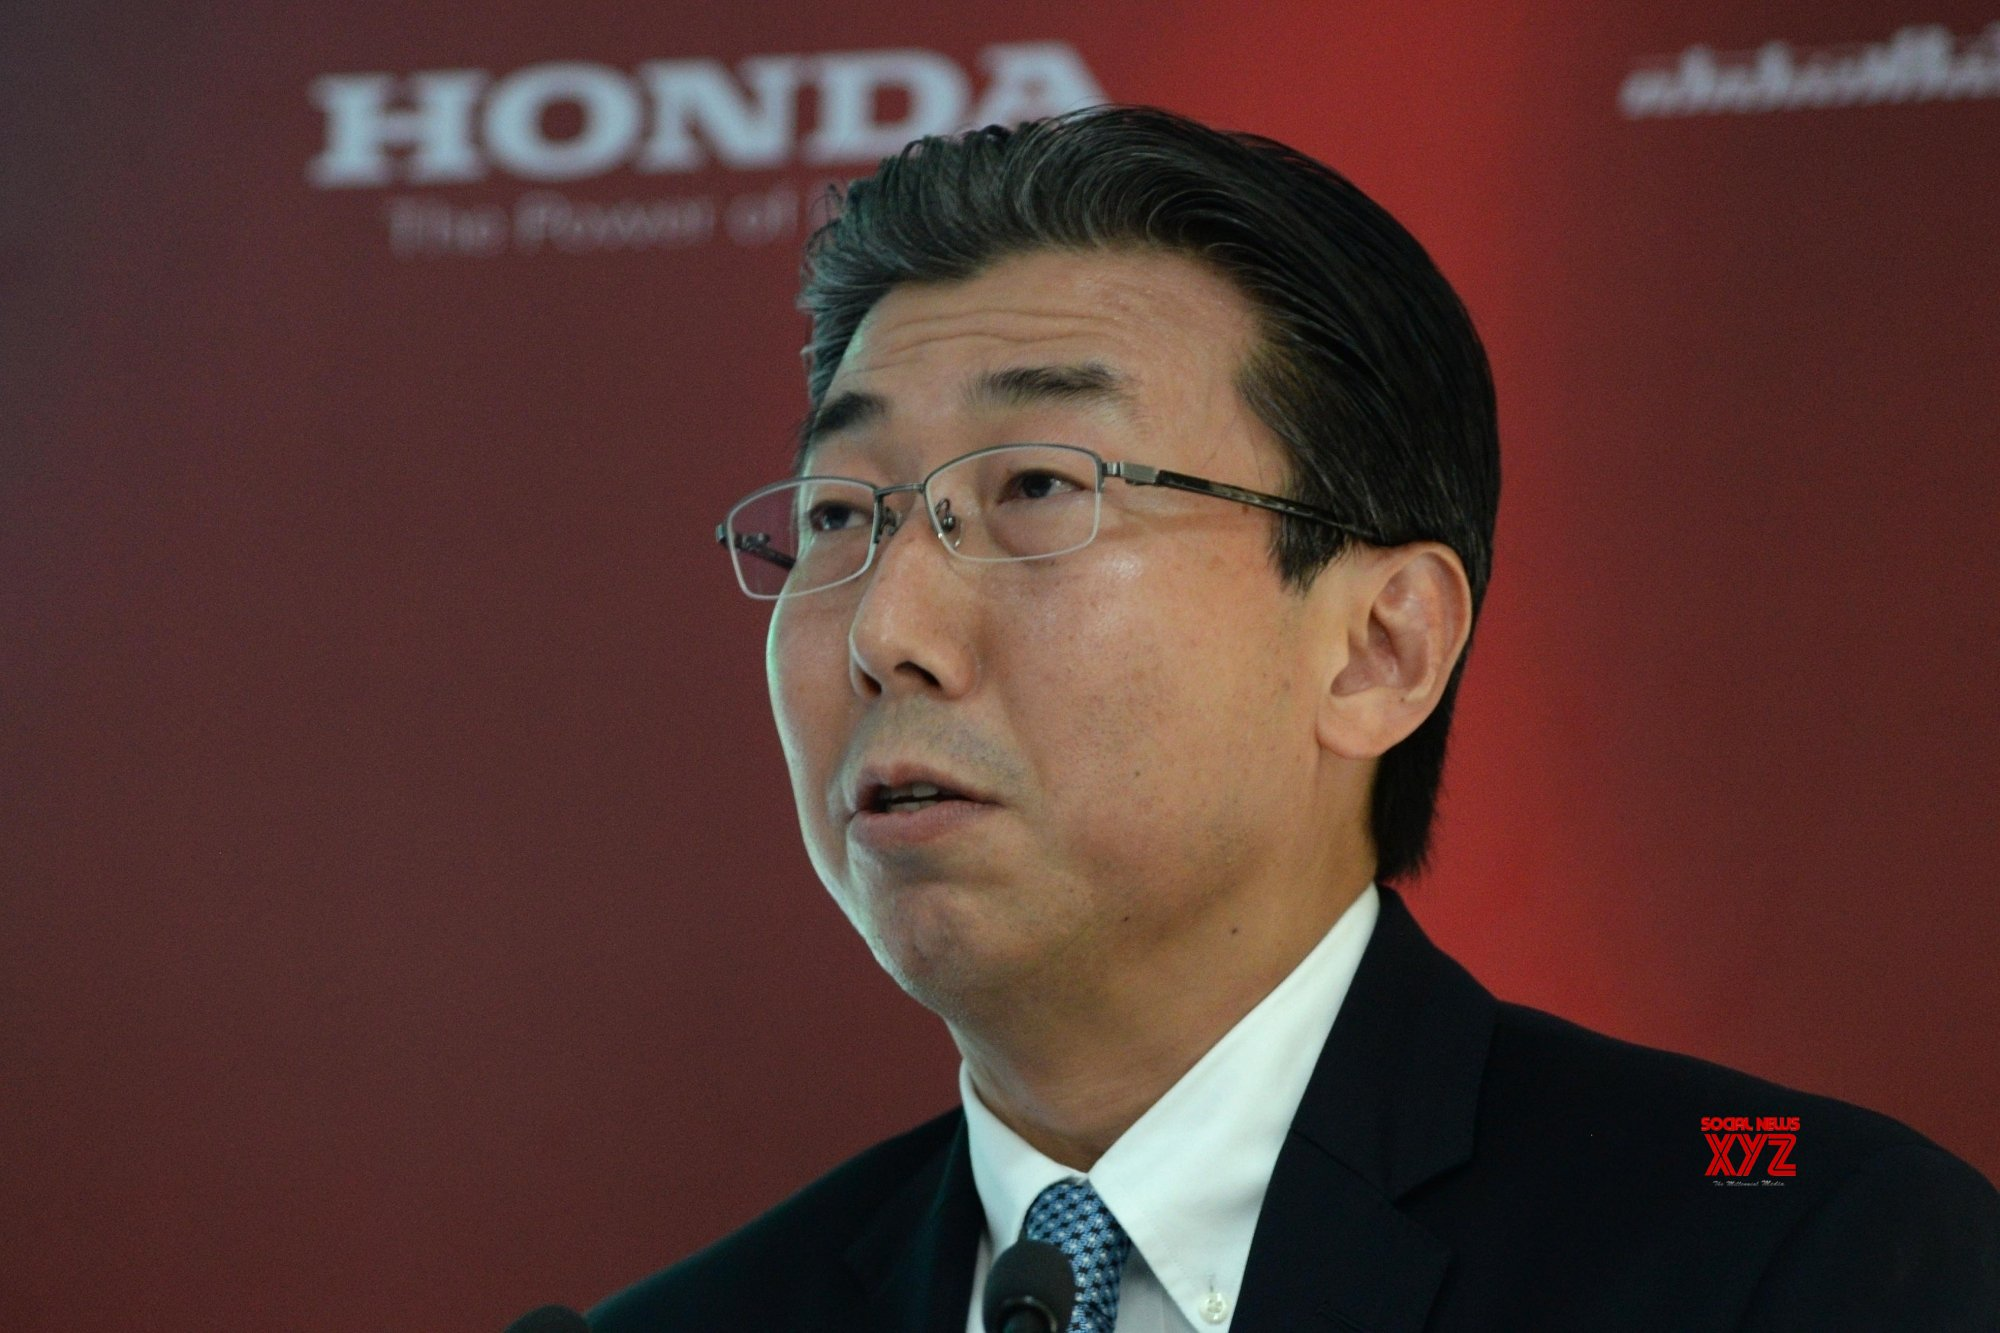 No plans of investing in tracks in India at present: Honda